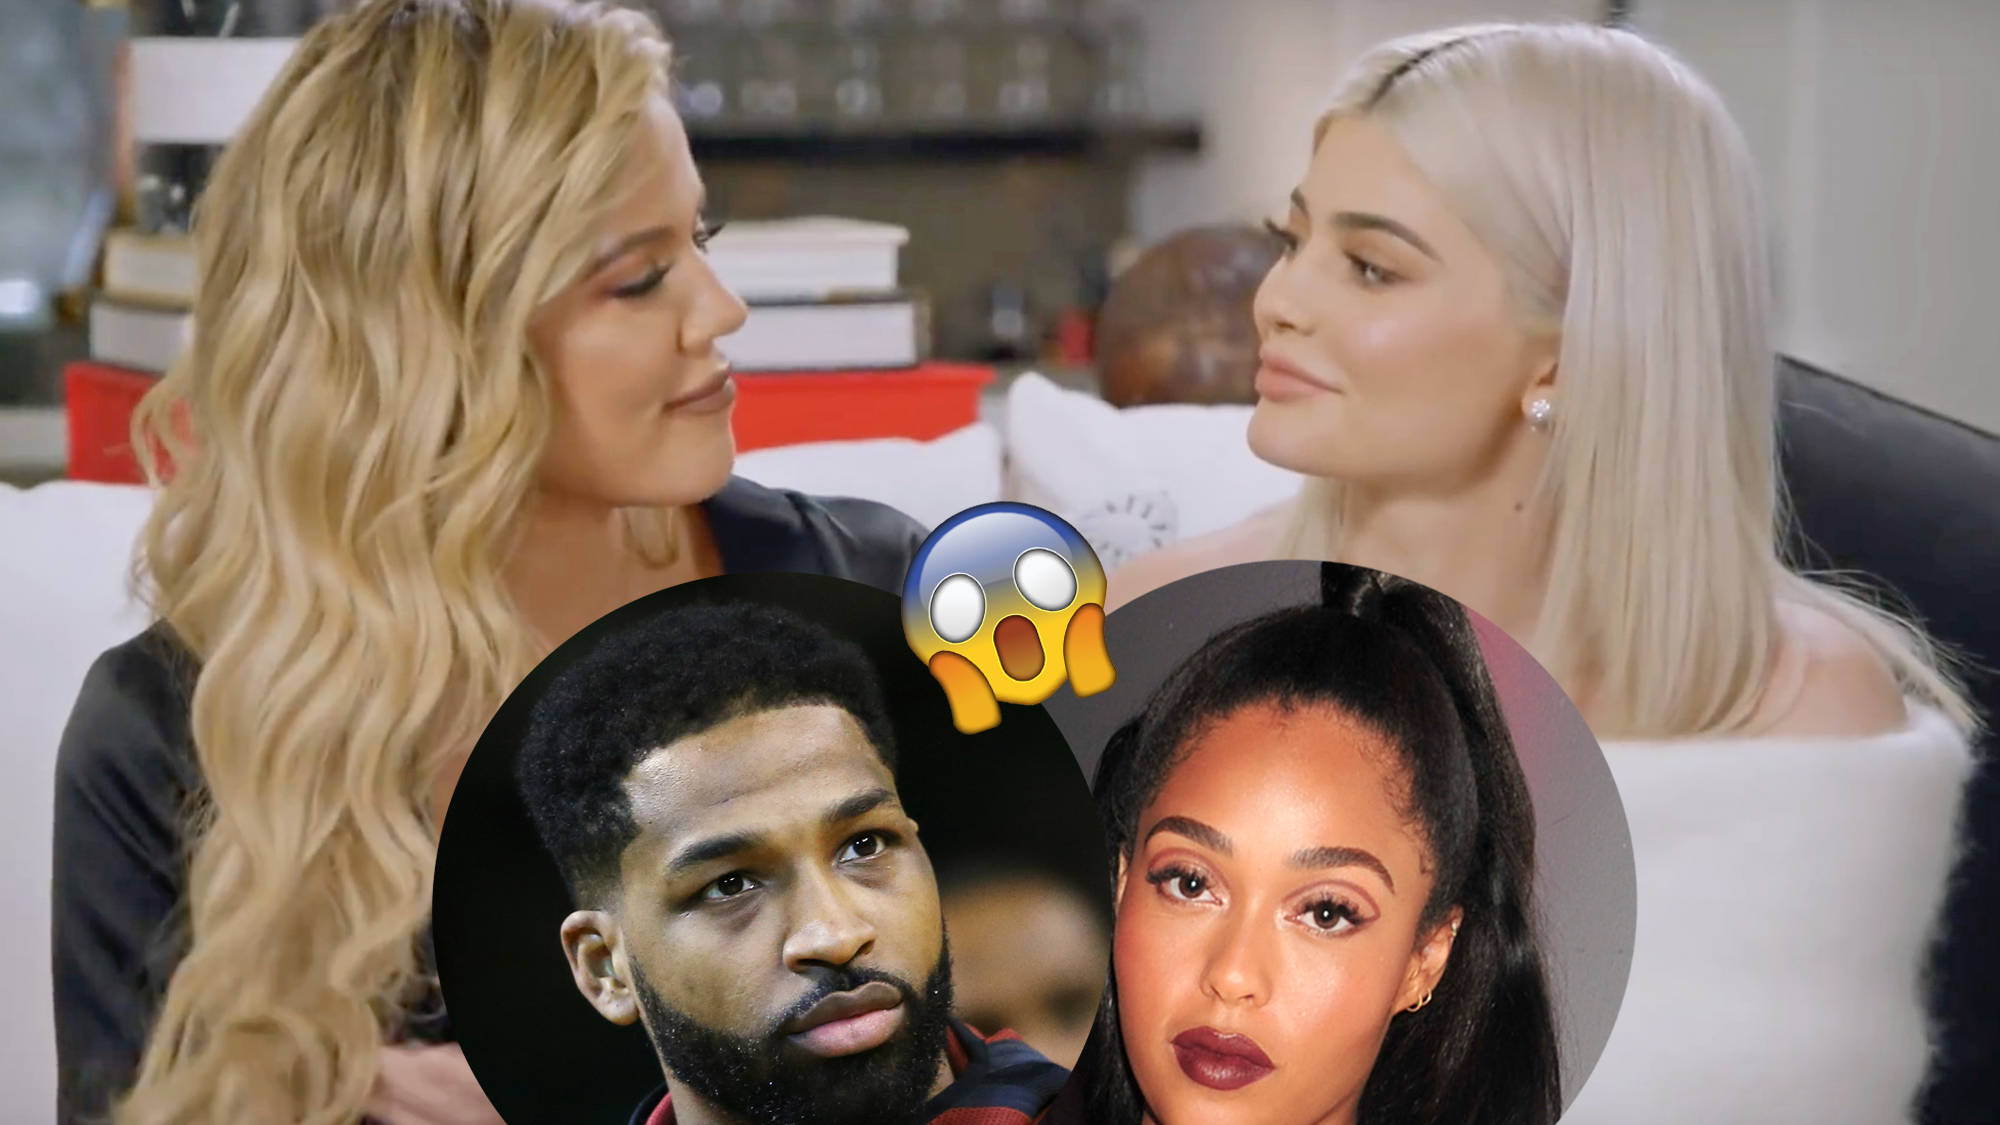 Jordyn Woods Is Reportedly Crying All Day Long, Trying To Reach Khloe Kardashian And Kylie Jenner - Neither Of Them Answers Her Phonecalls